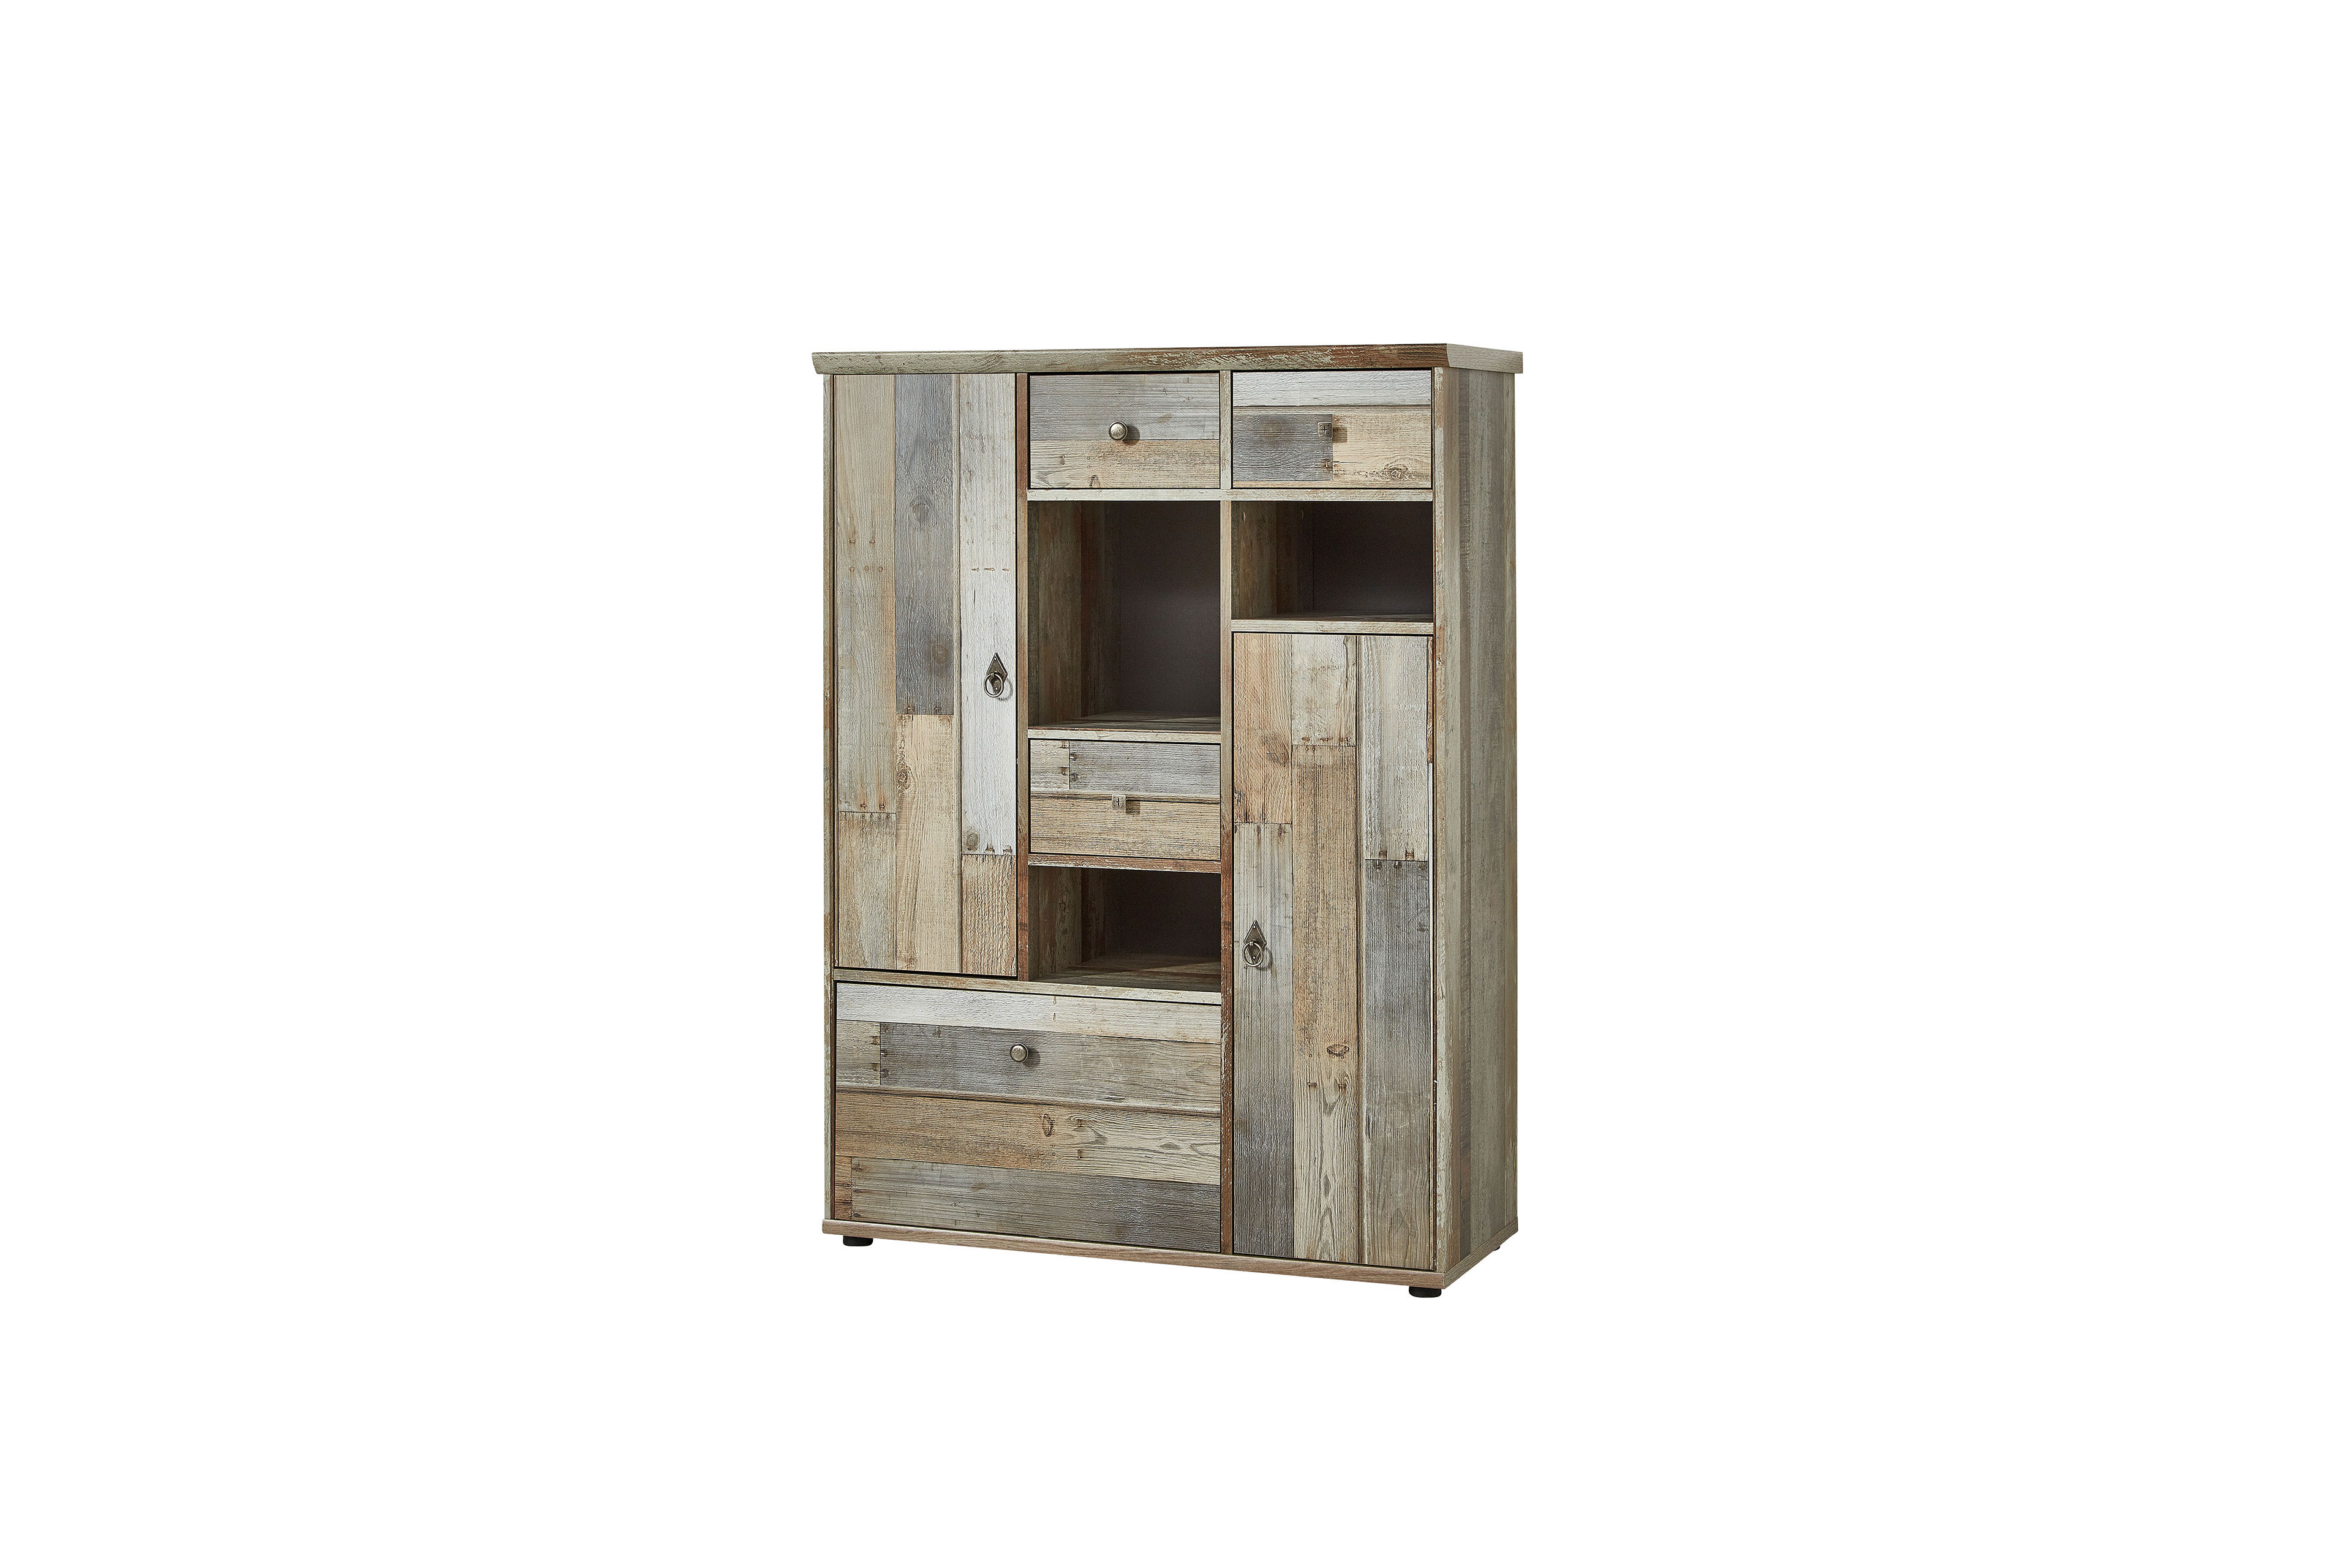 innostyle tisch bonanza driftwood m bel letz ihr. Black Bedroom Furniture Sets. Home Design Ideas